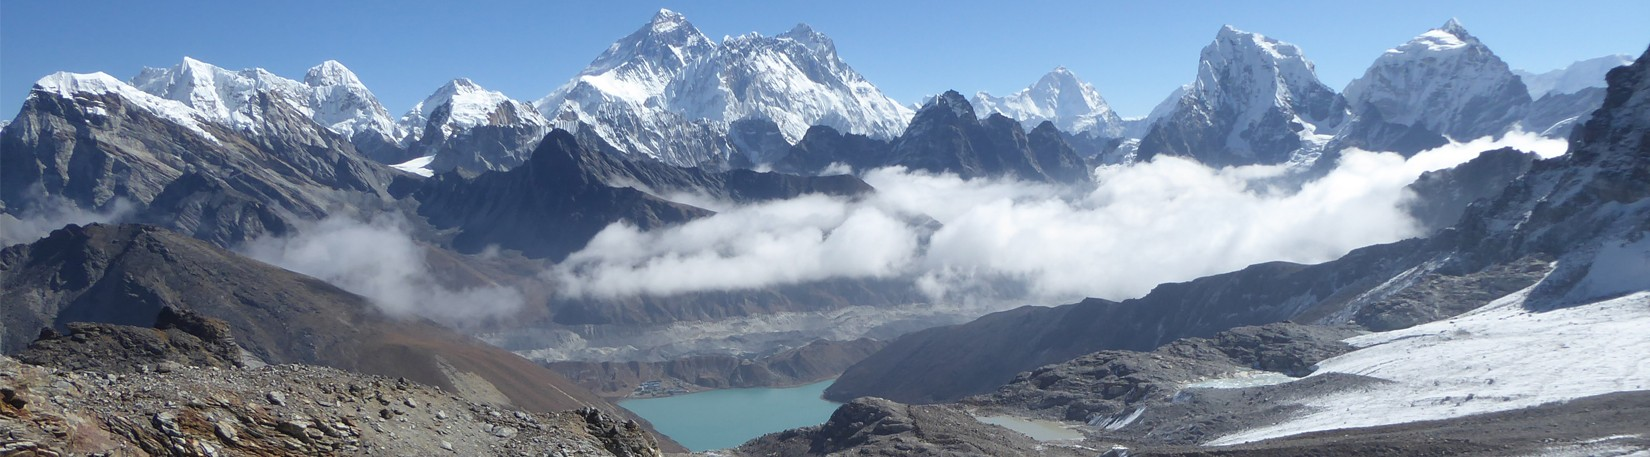 View from Cho La Pass, Everest Region